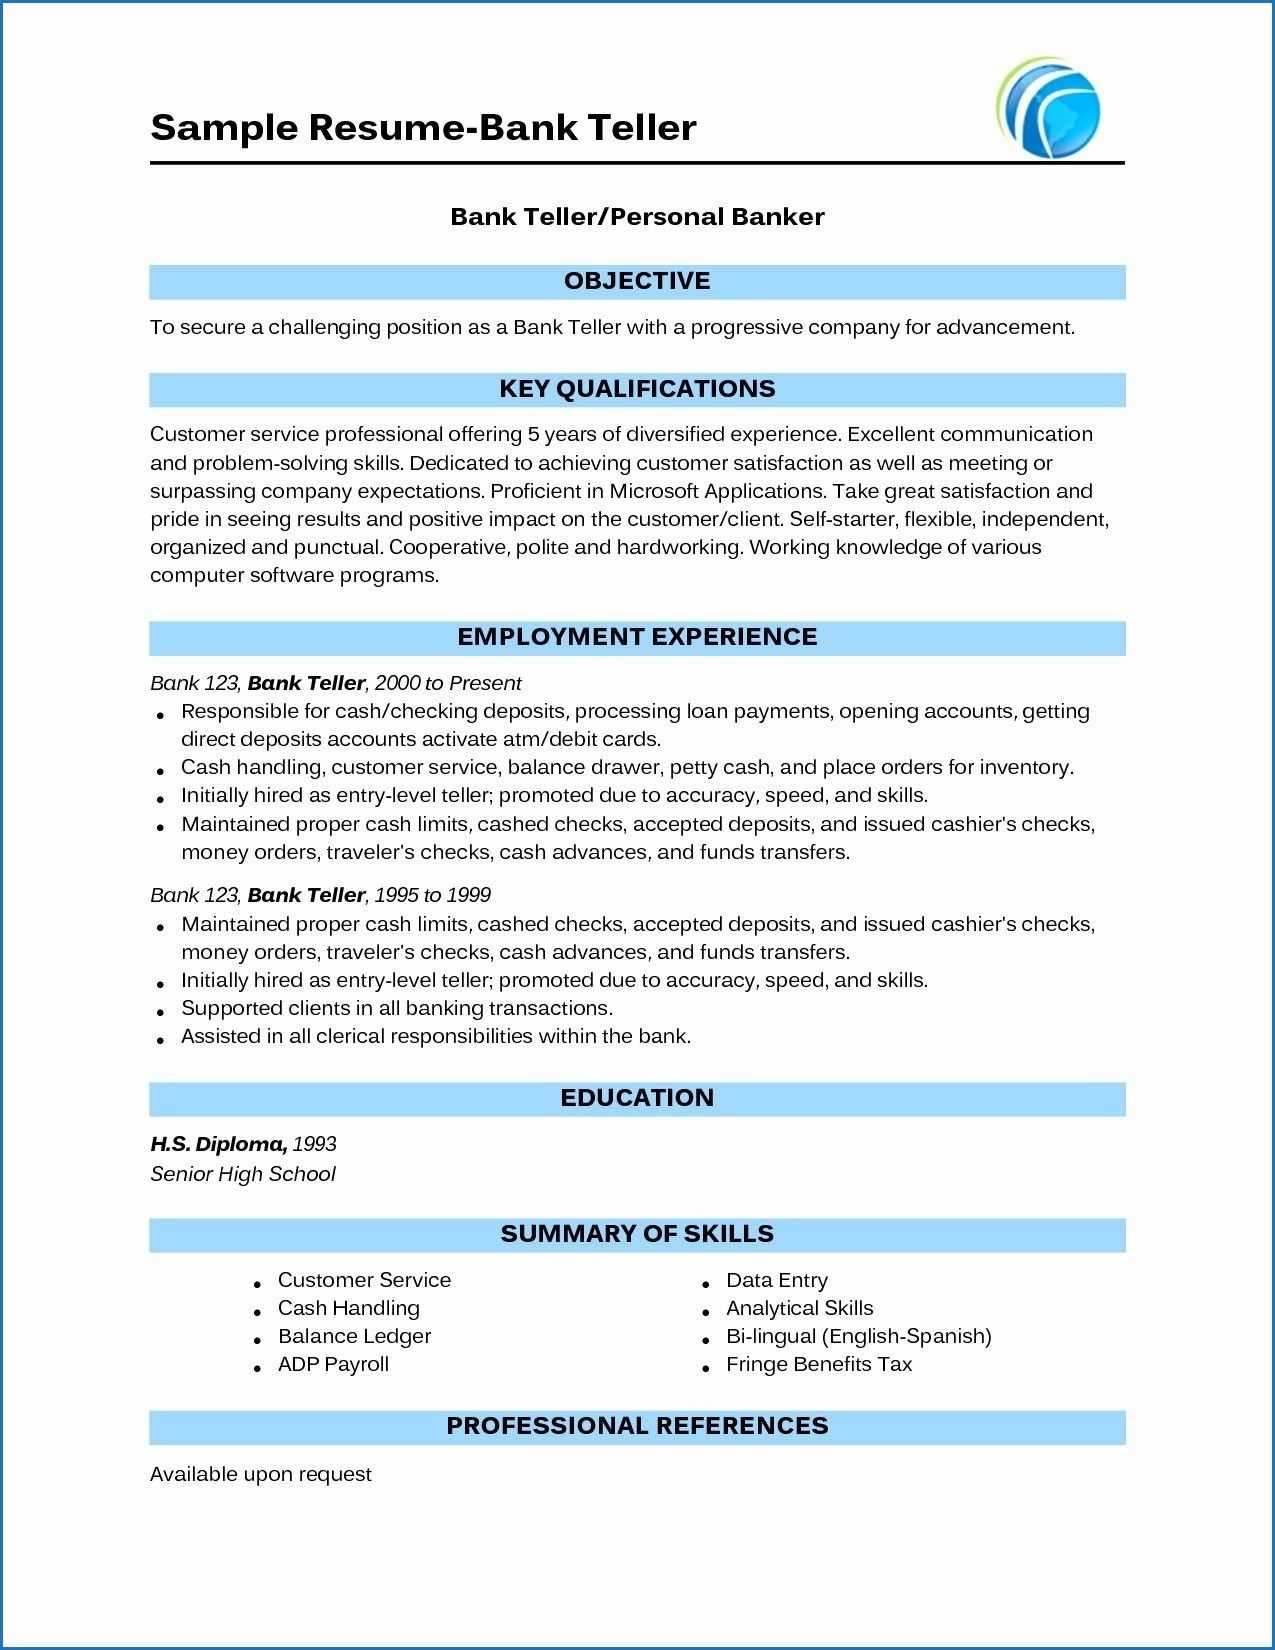 15 Banking Sector Resume Examples | Bank Teller Resume pertaining to Hiv Aids Brochure Templates